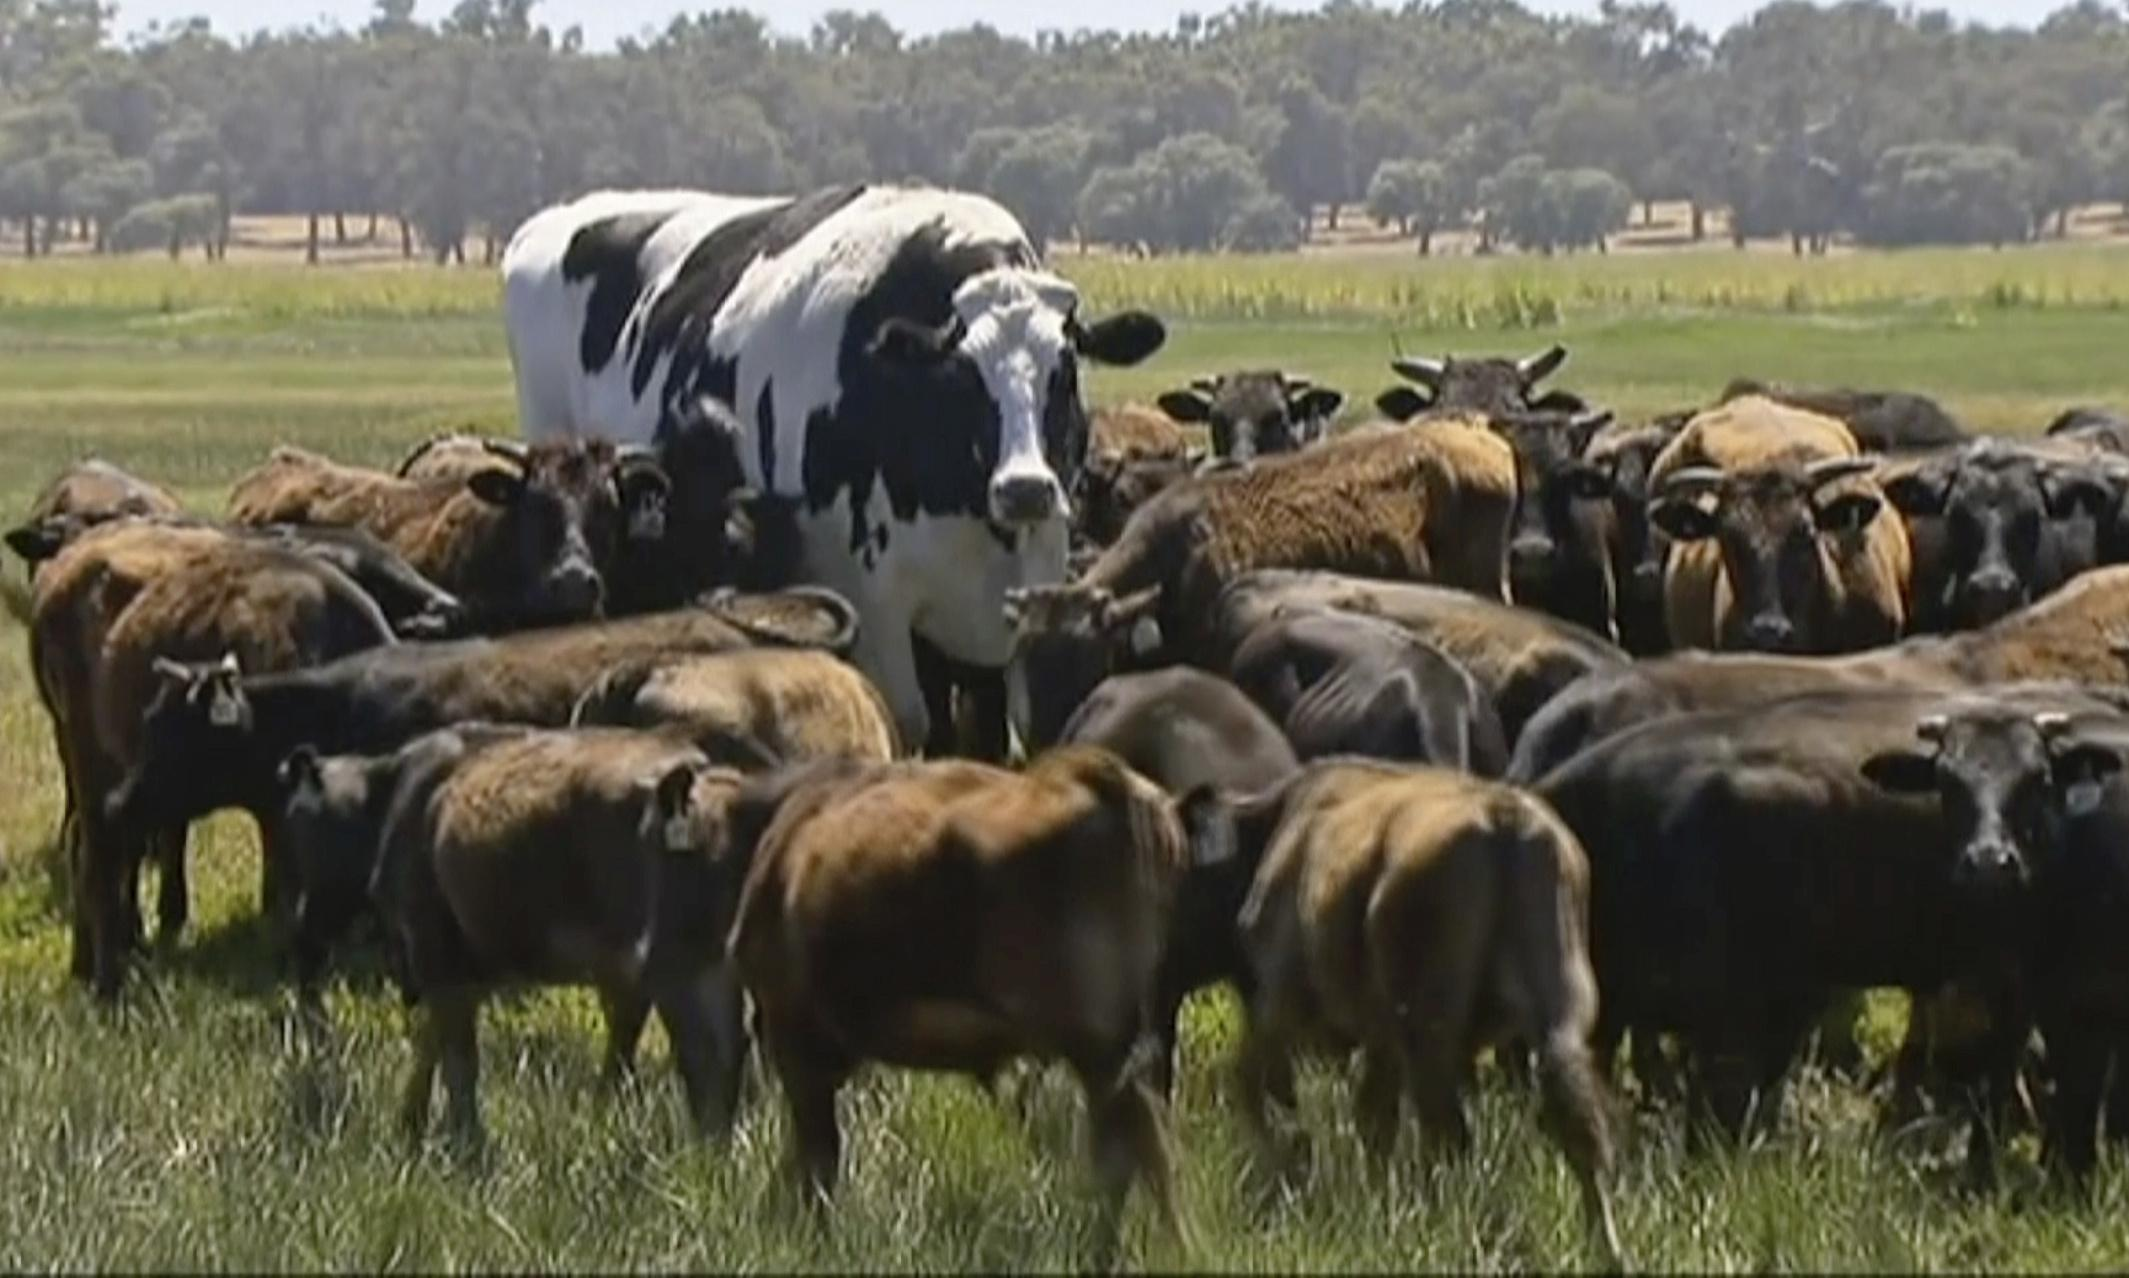 Knickers the cow: why Australia's giant steer is so fascinating